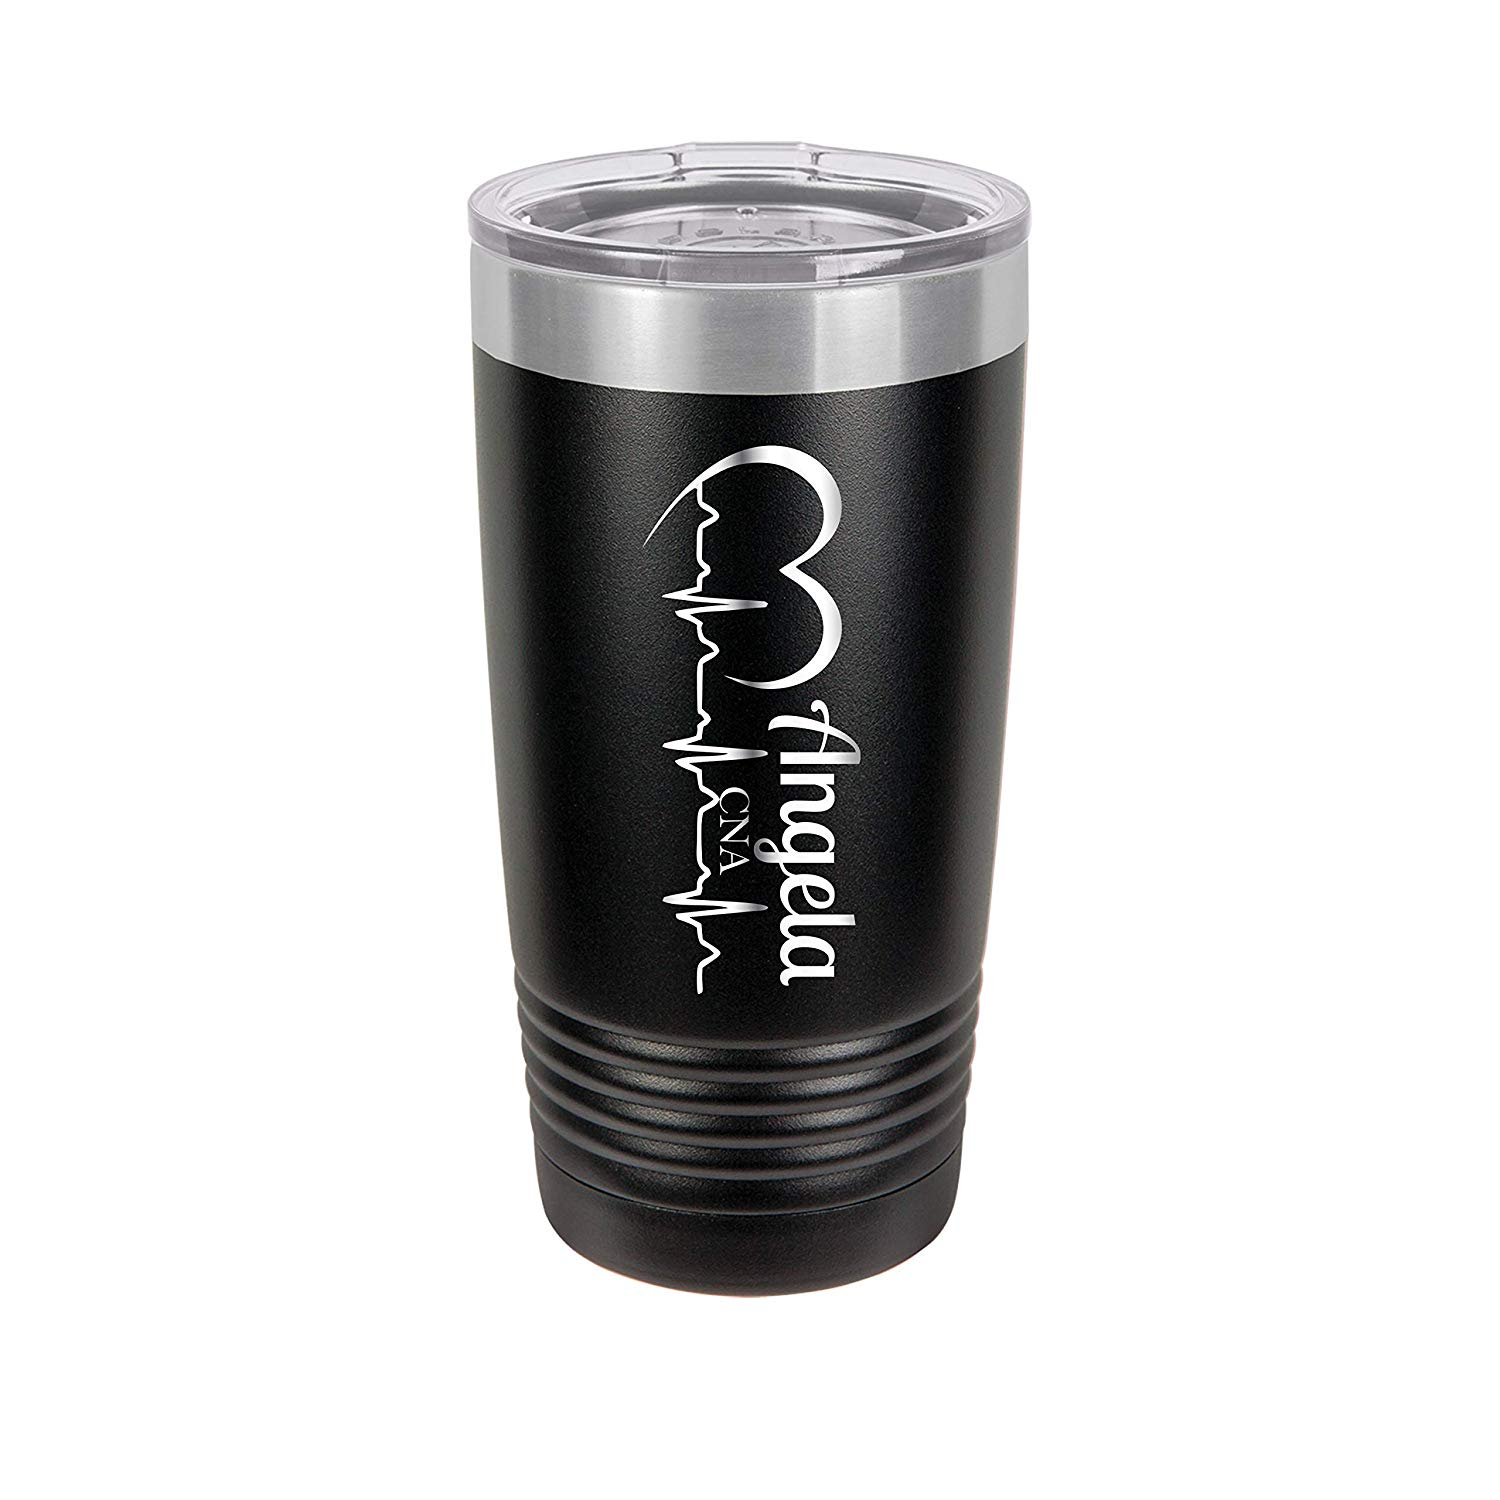 Personalized Engraved Insulated Stainless Steel Tumbler